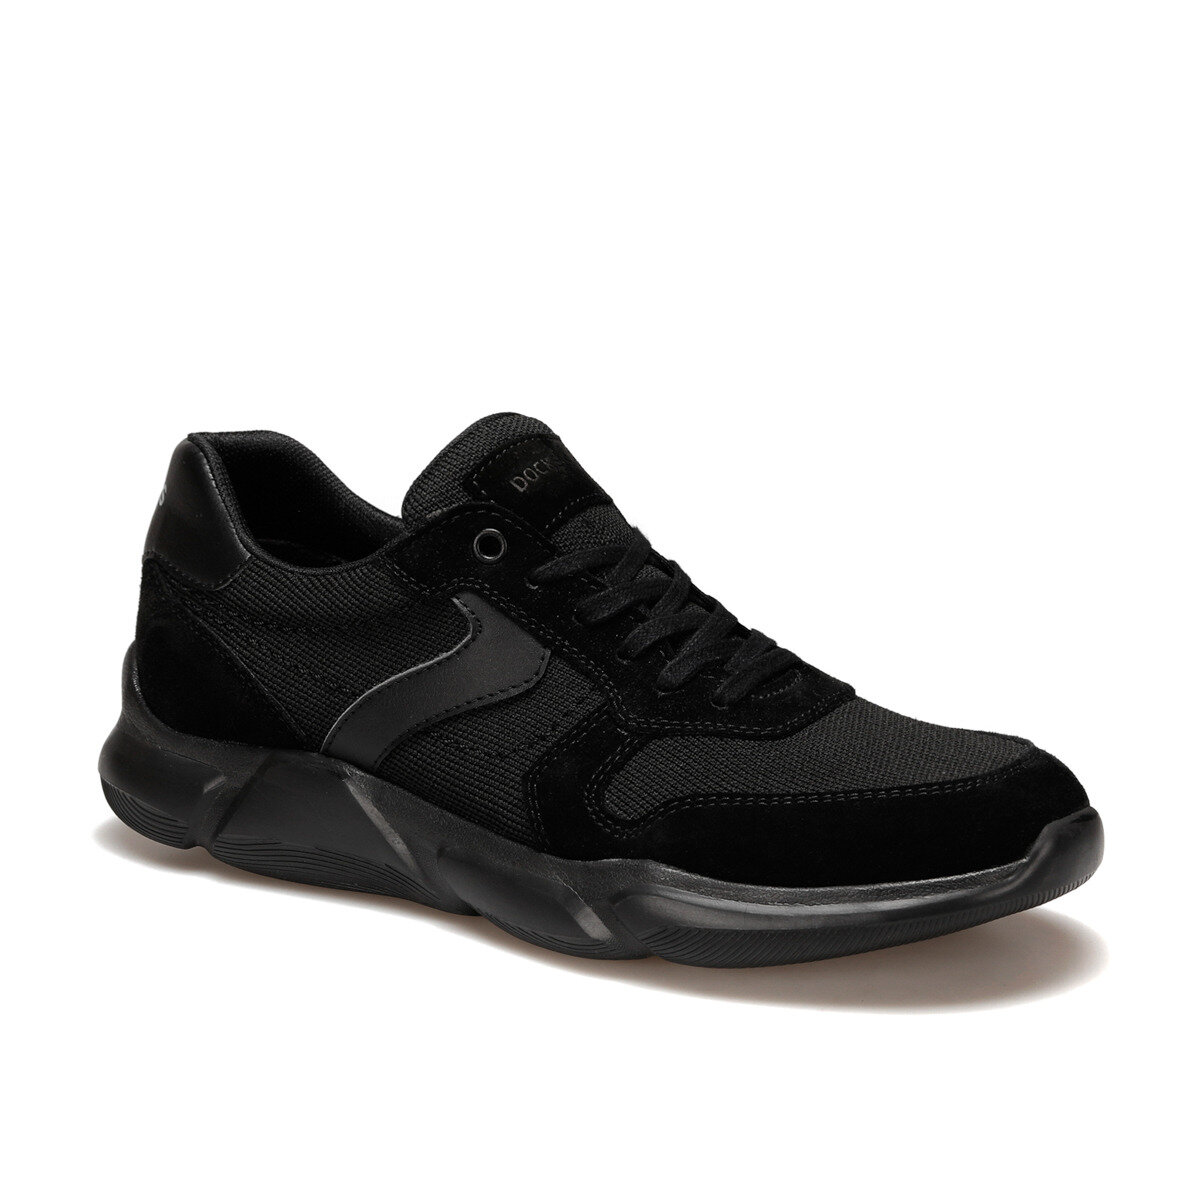 FLO 228385 Black Male Sports Shoes By Dockers The Gerle